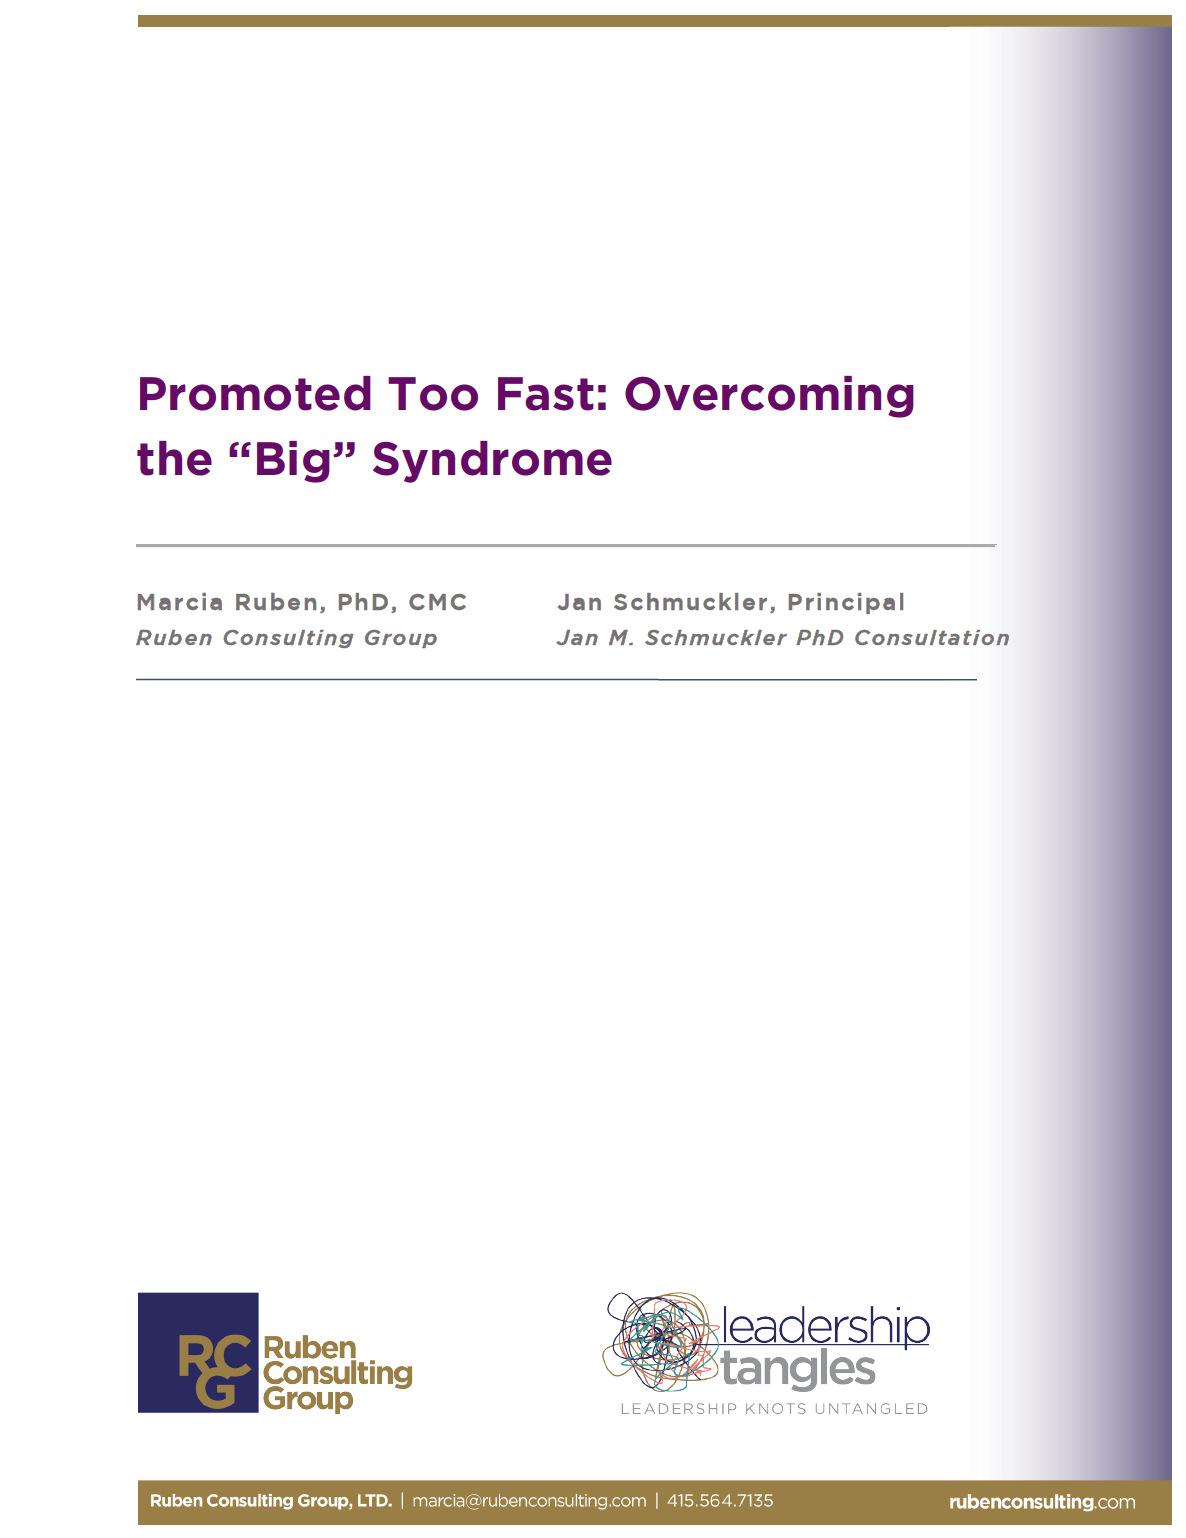 Promoted Too Fast: Overcoming the Big Syndrome